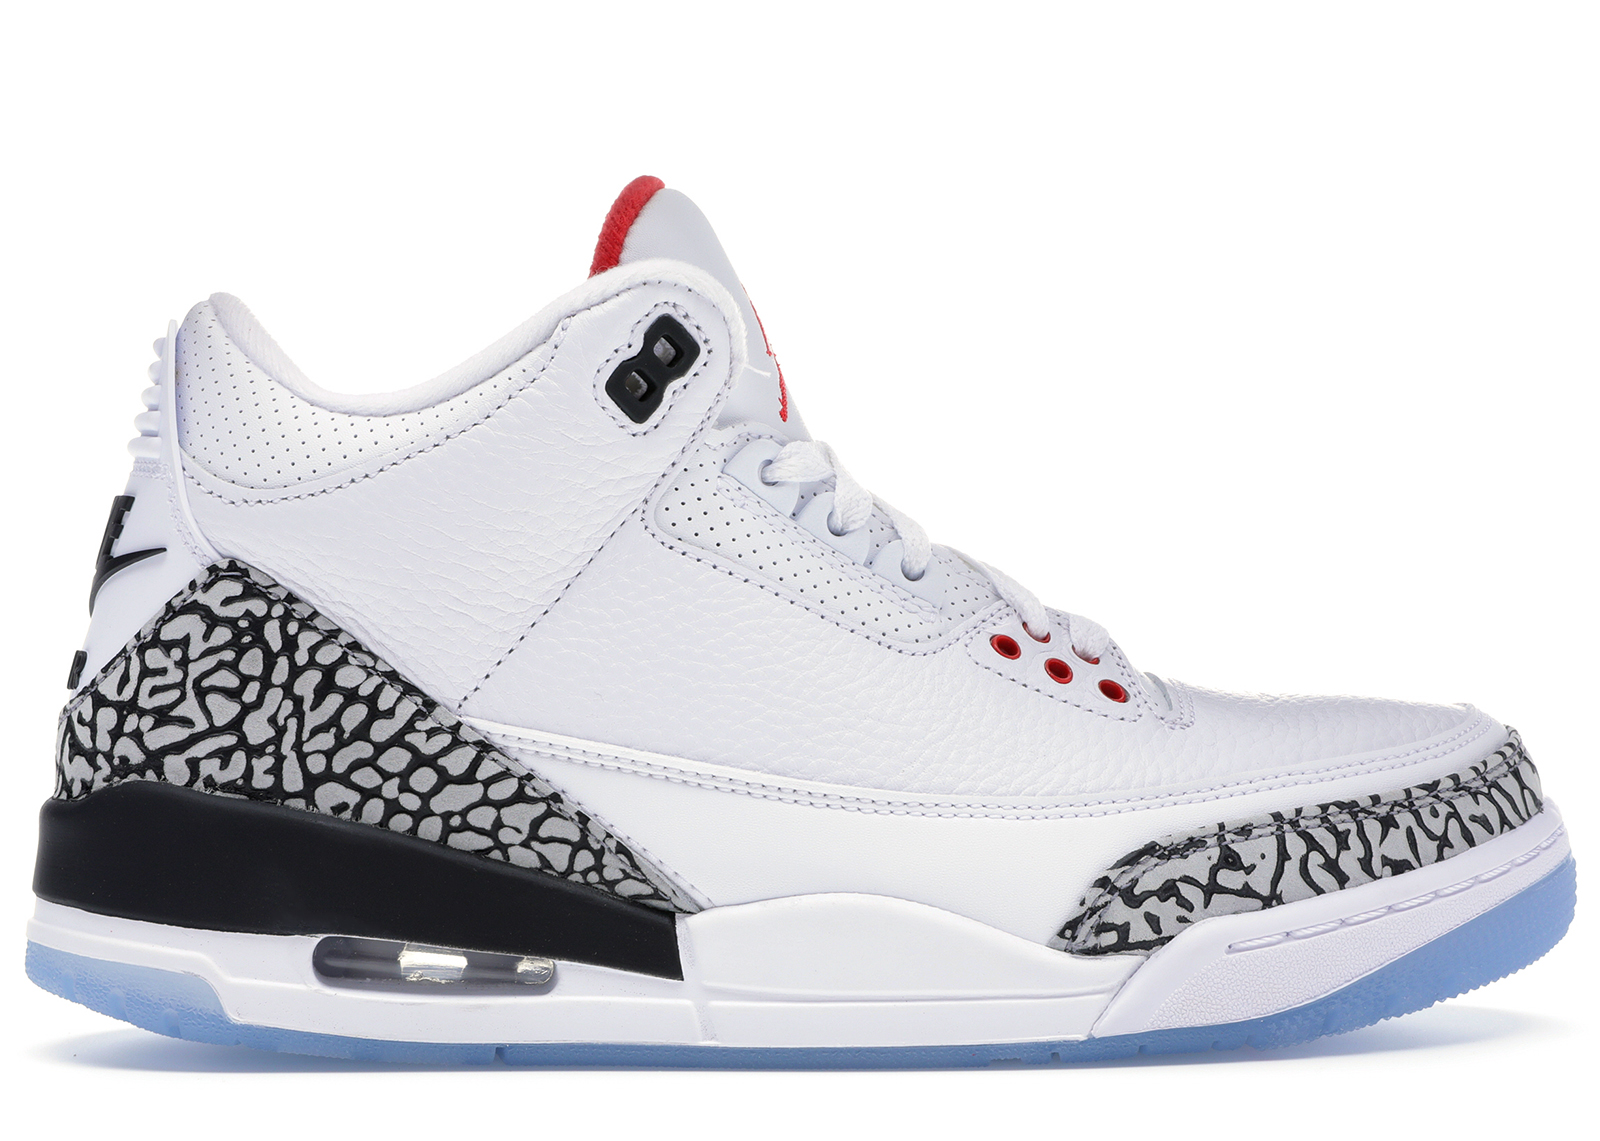 d62da85f5f65 ... where to buy jordan 3 retro free throw line white cement 923096 101  1960c eac15